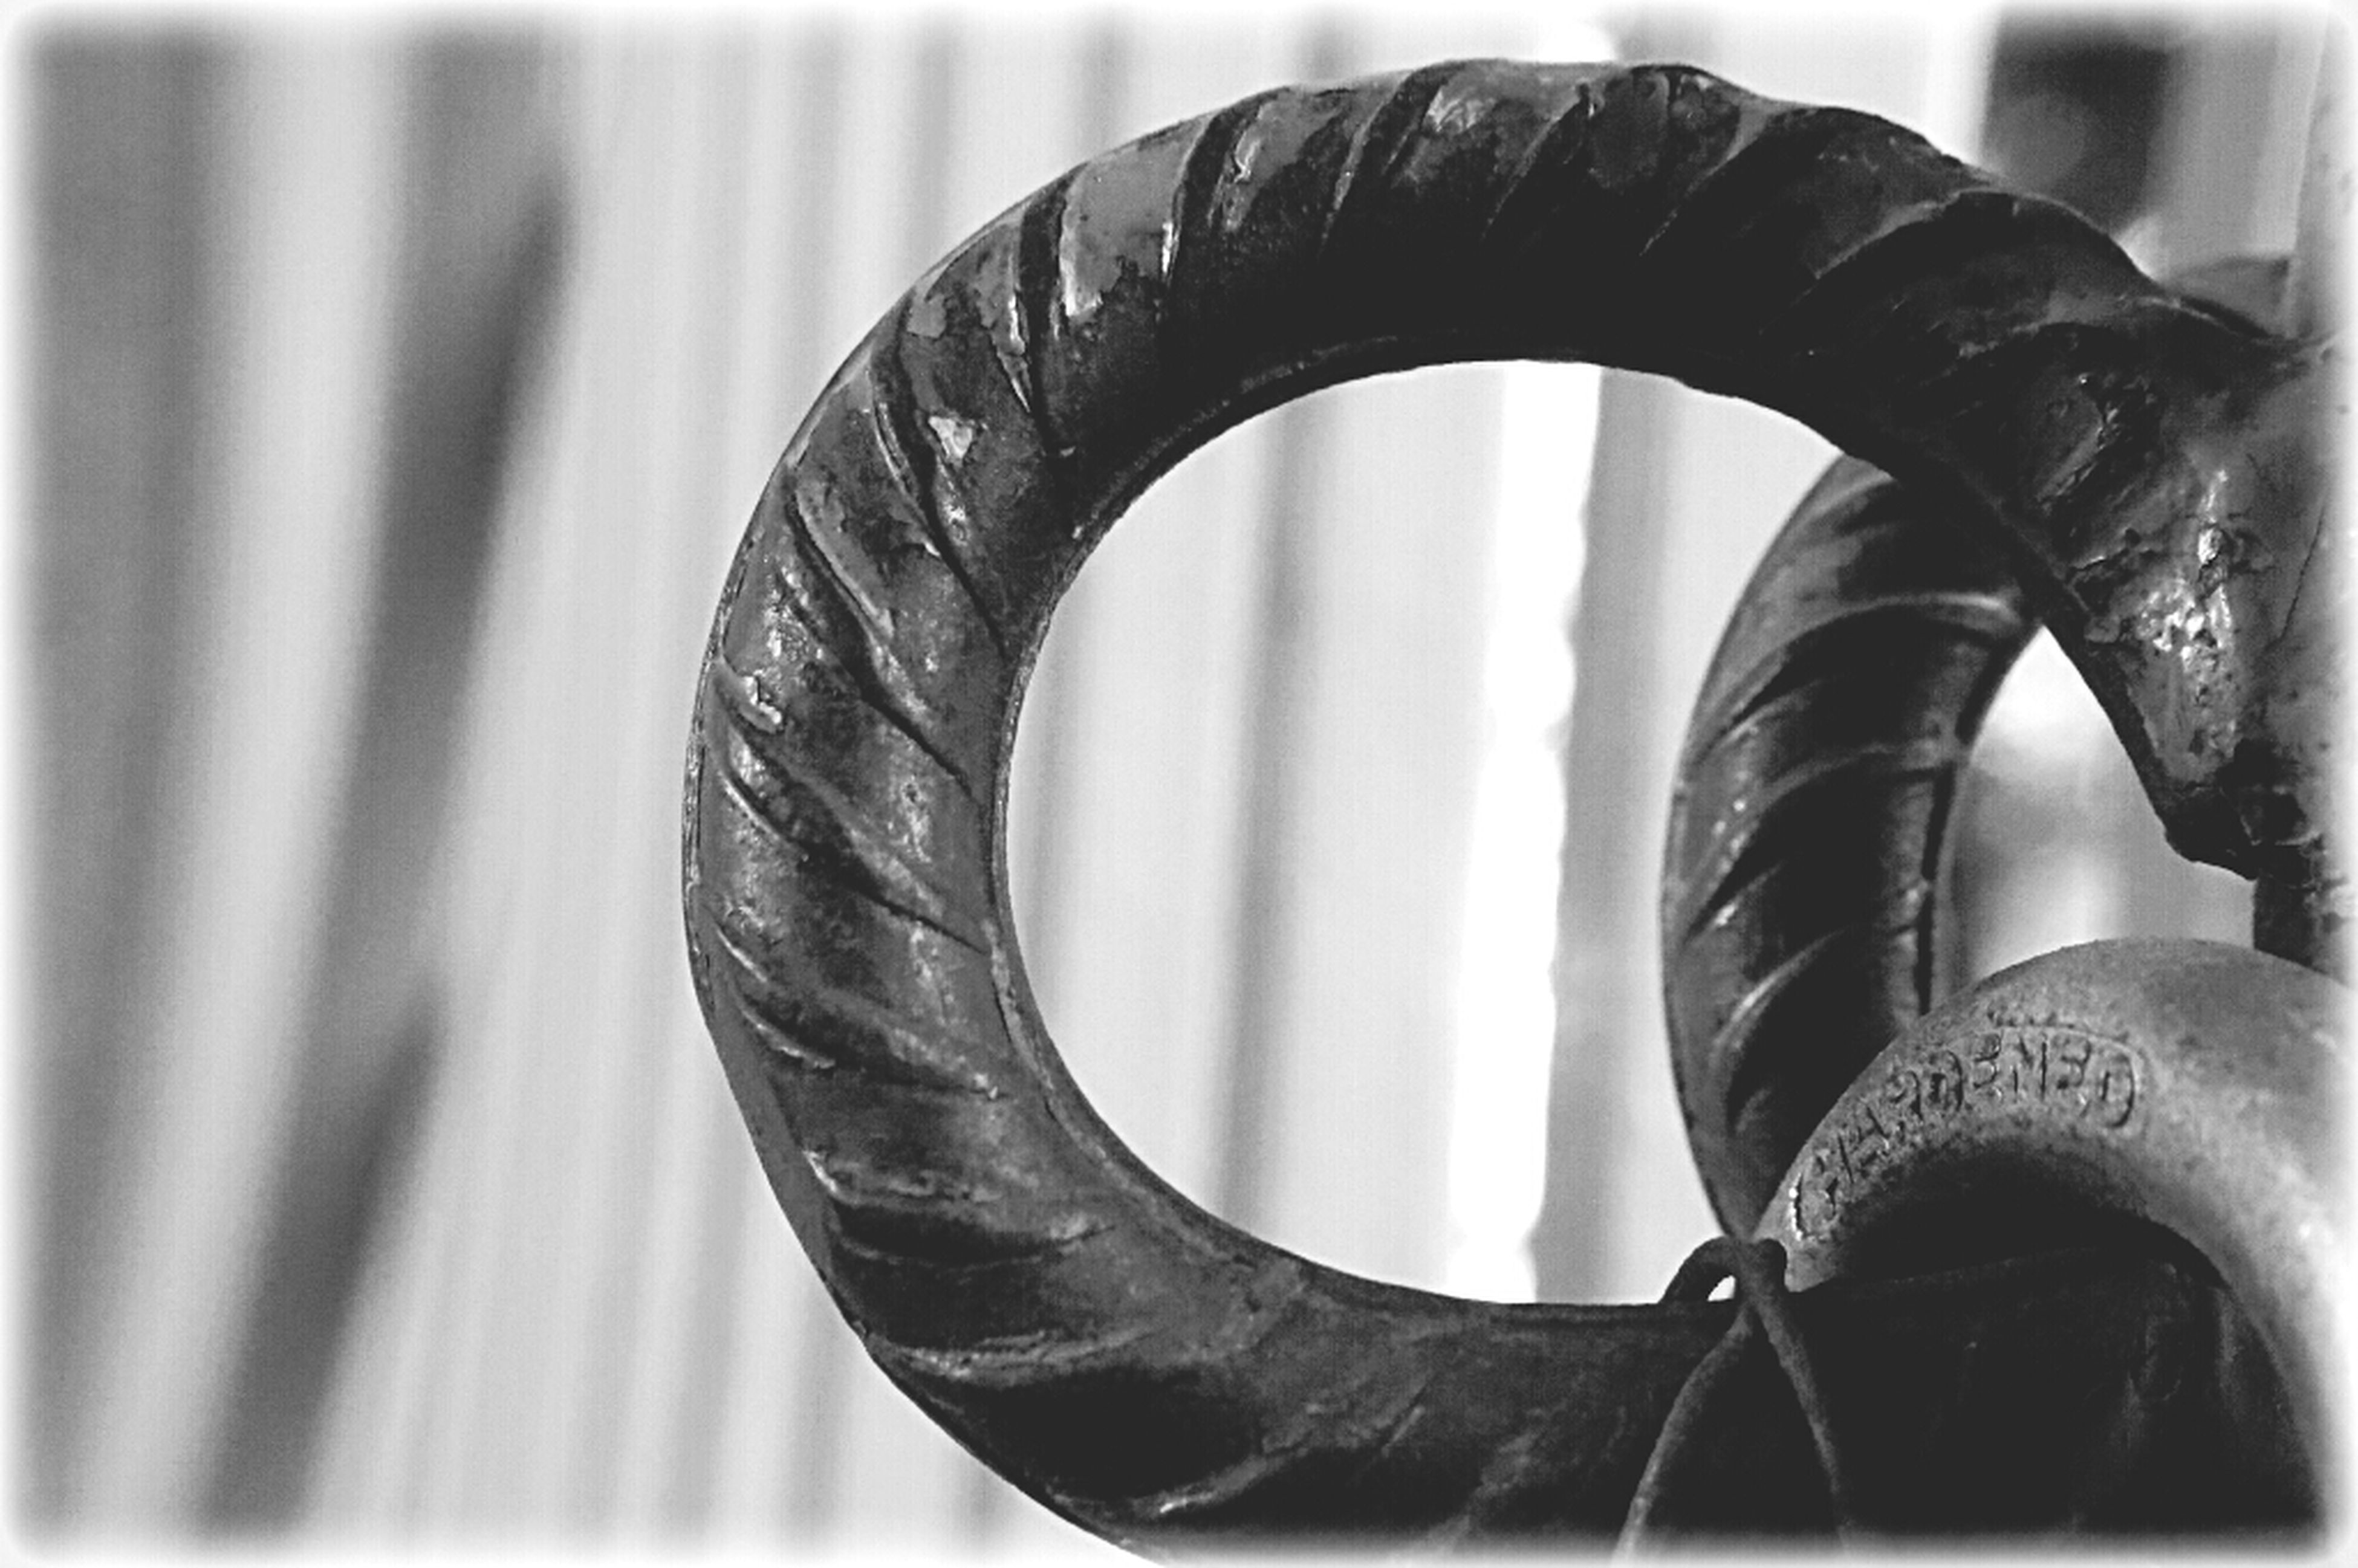 metal, close-up, metallic, focus on foreground, spiral, part of, railing, circle, rusty, strength, indoors, day, pattern, selective focus, detail, no people, connection, curve, spiral staircase